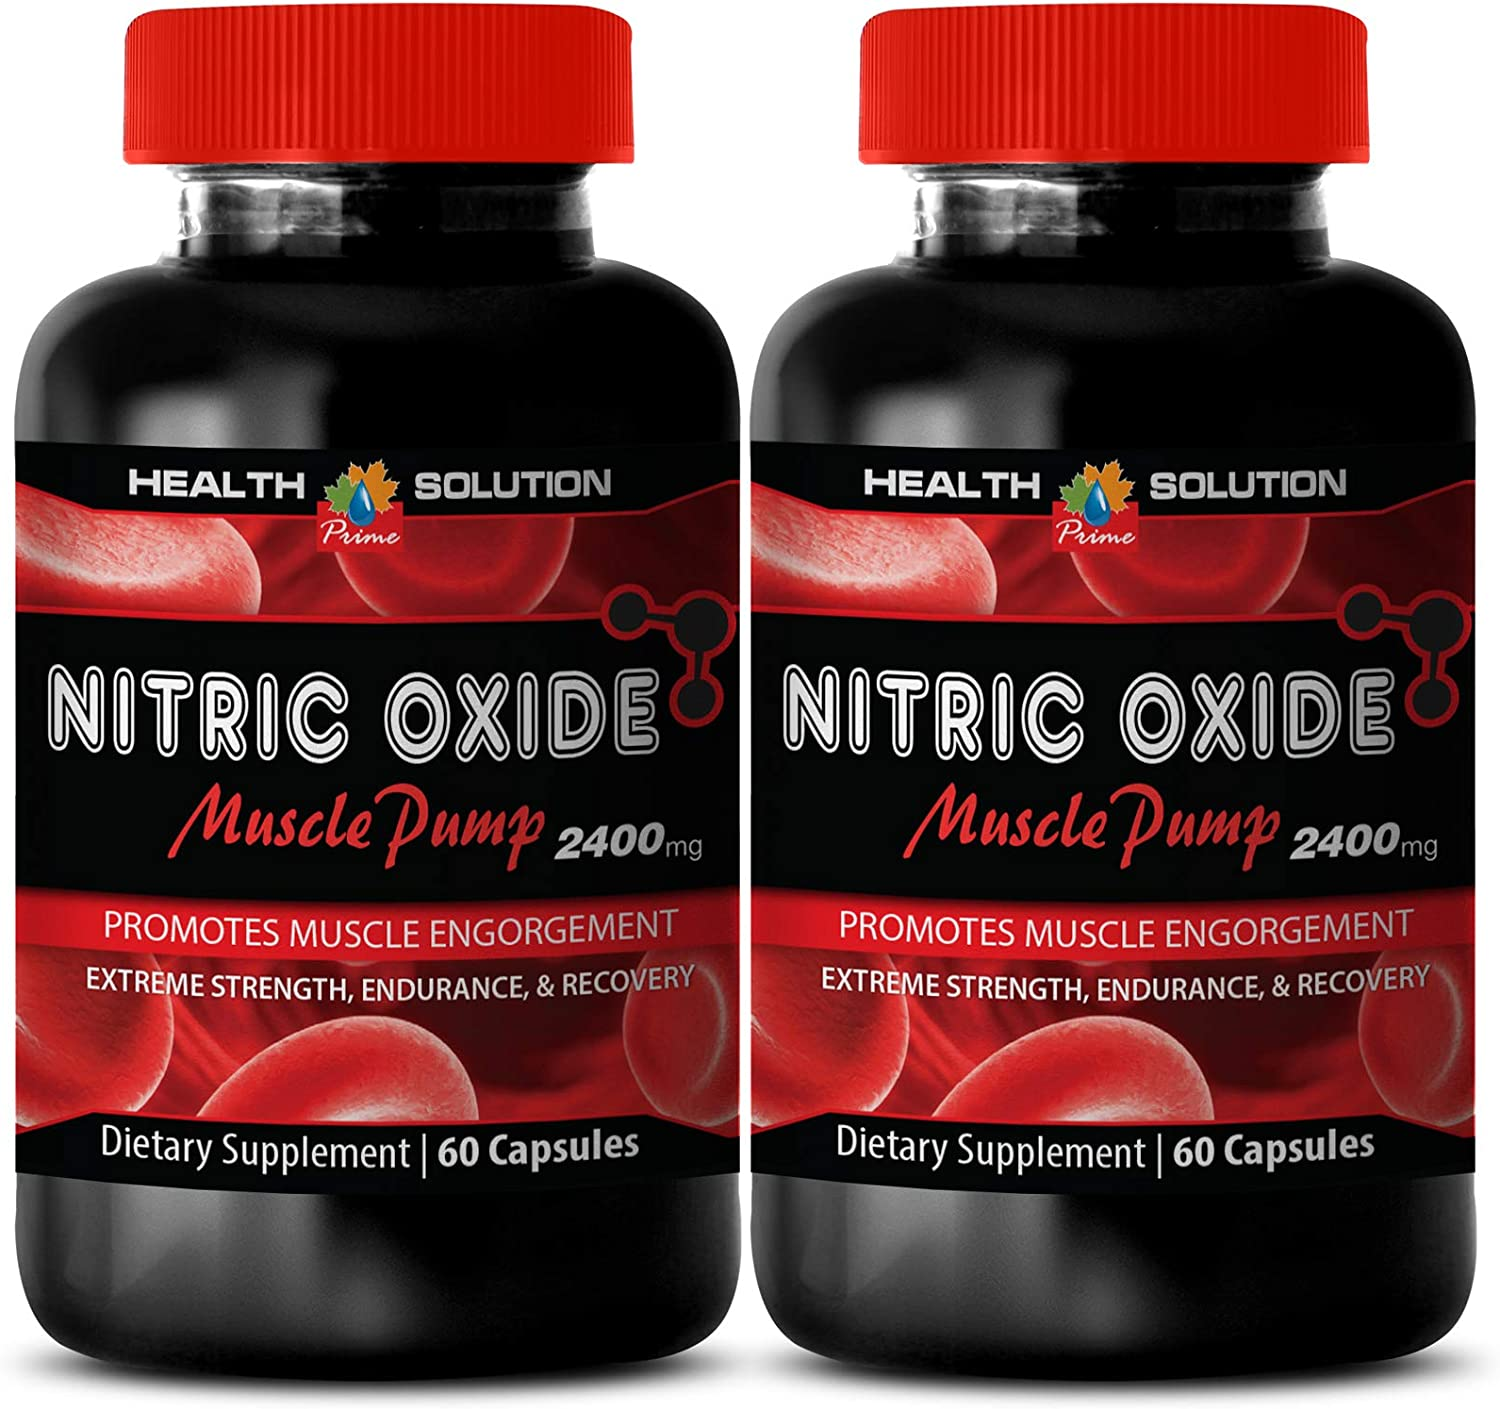 Nitric Oxide Weight Loss Pills for Men Muscle Grow - Nitric Oxide Muscle Pump 2400MG - Increase Testosterone Levels (2 Bottles)